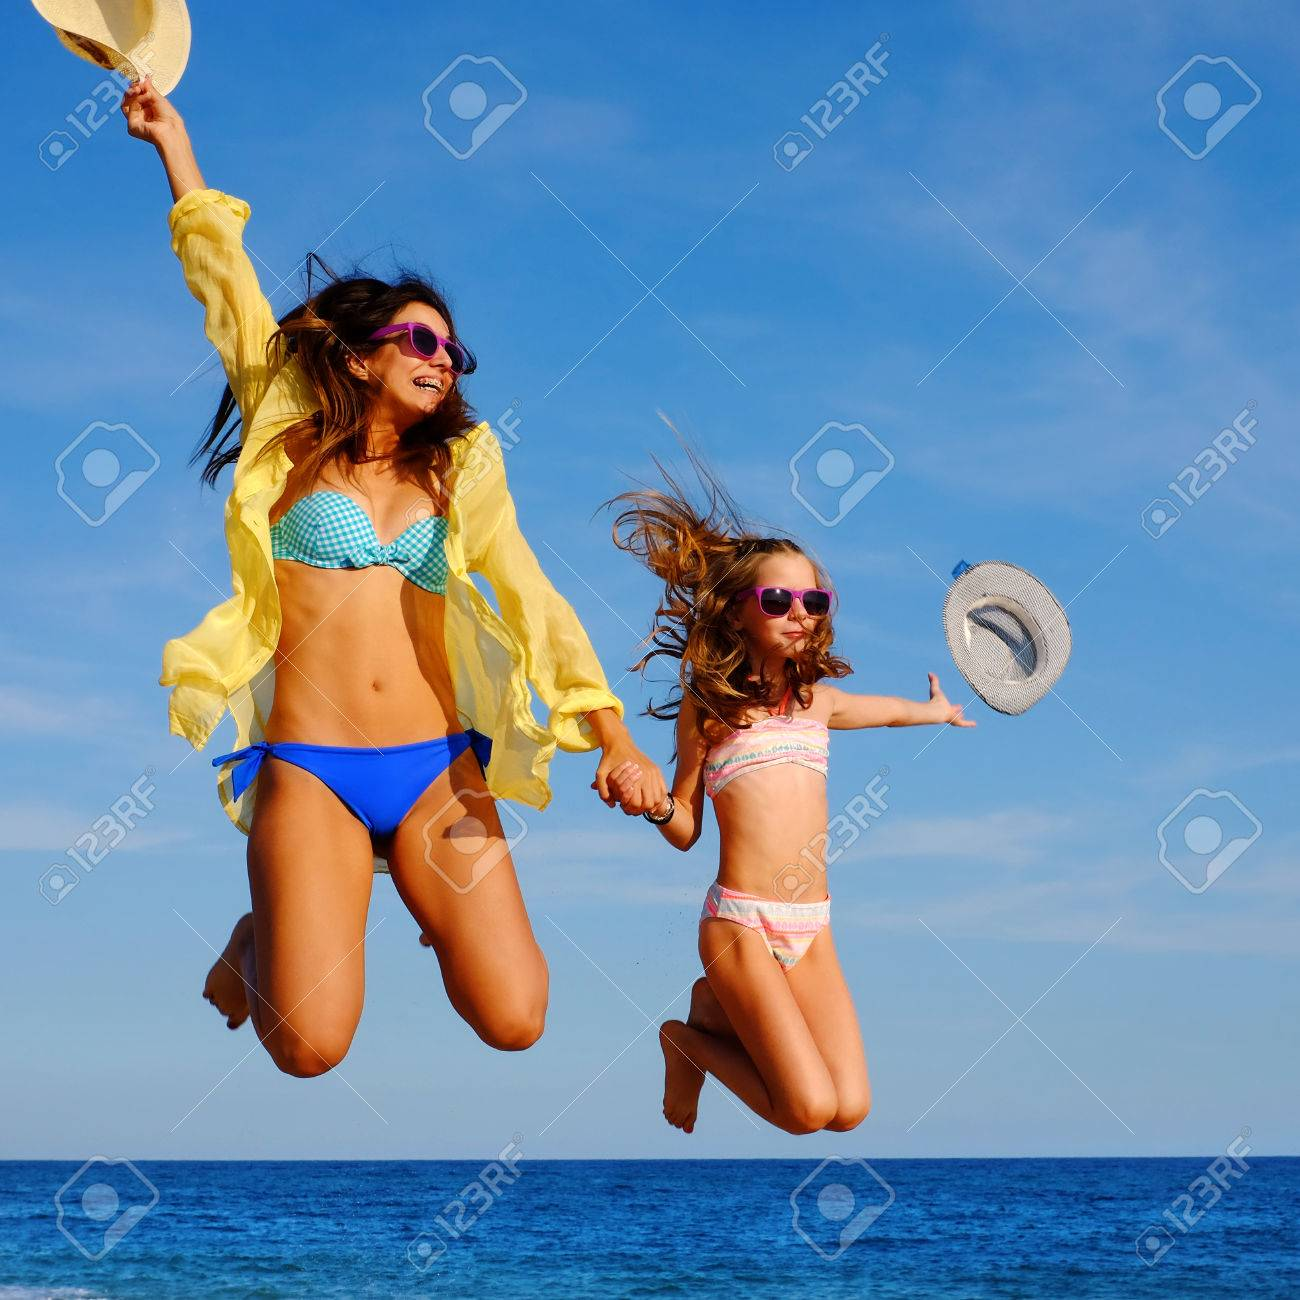 c93ff67e0fe6c Close up action portrait of young girls on holiday jumping on beach. Two  attractive happy